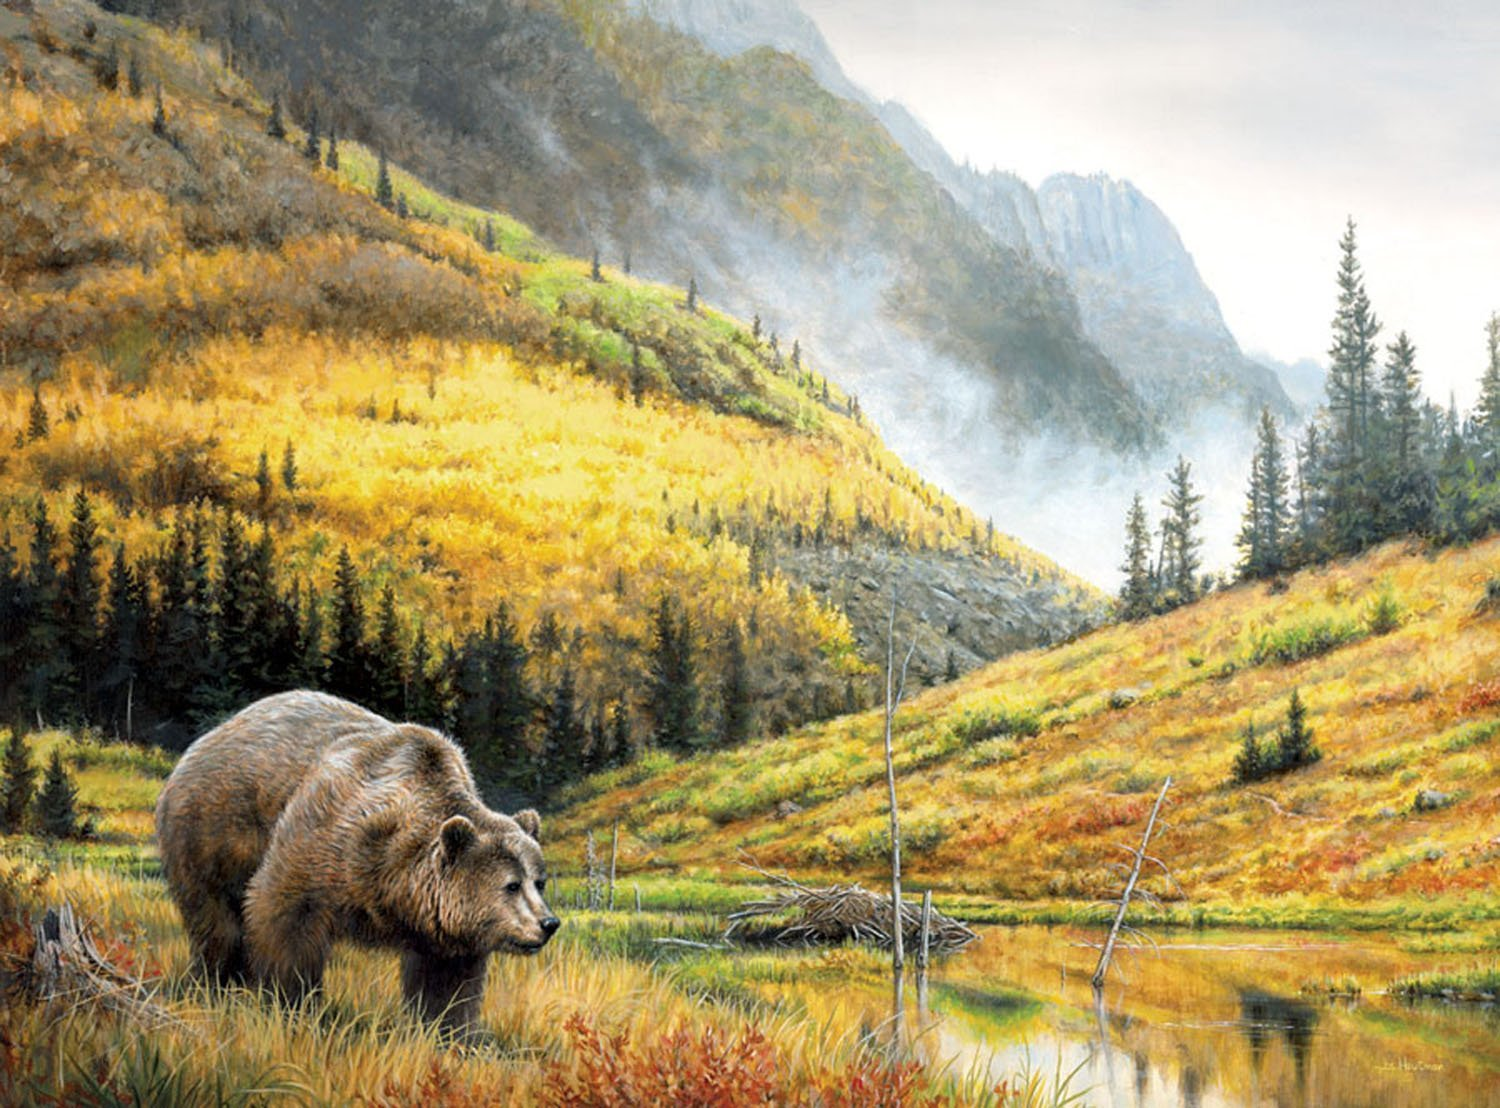 jigsaw puzzles images grizzly